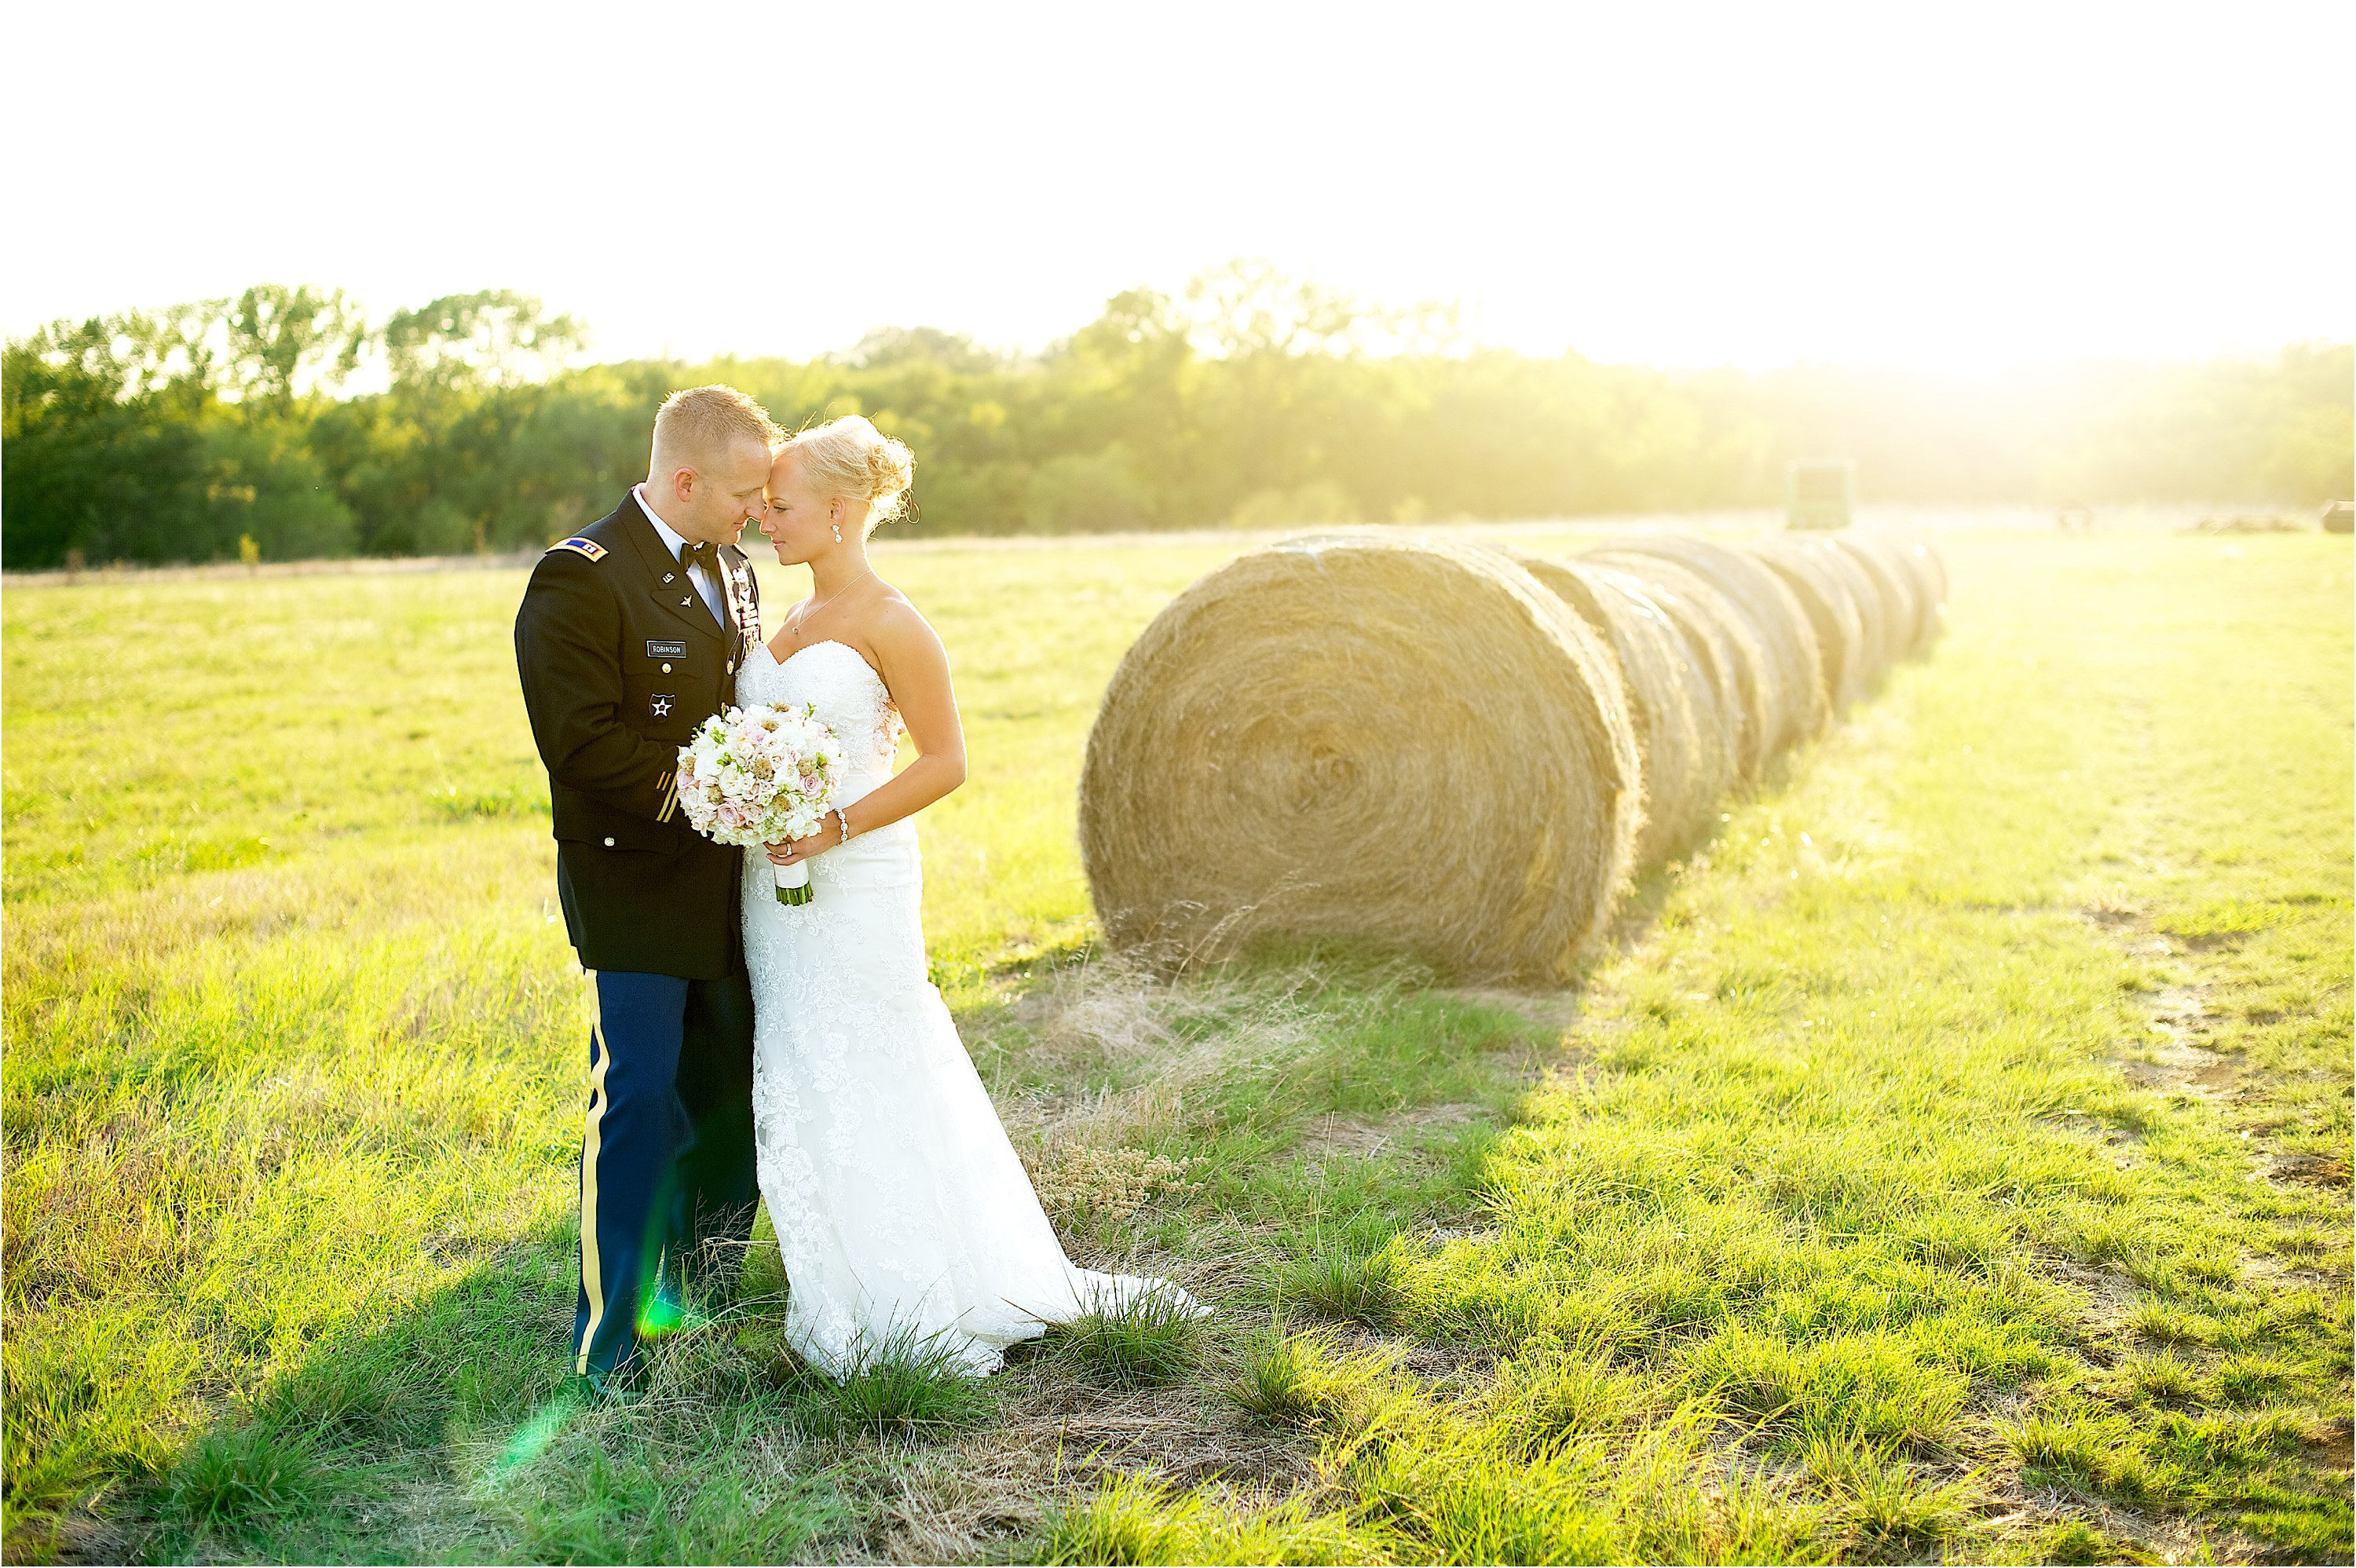 Melissa + Beau  |  Rock Creek Ranch Wedding  |  McKinney, TX